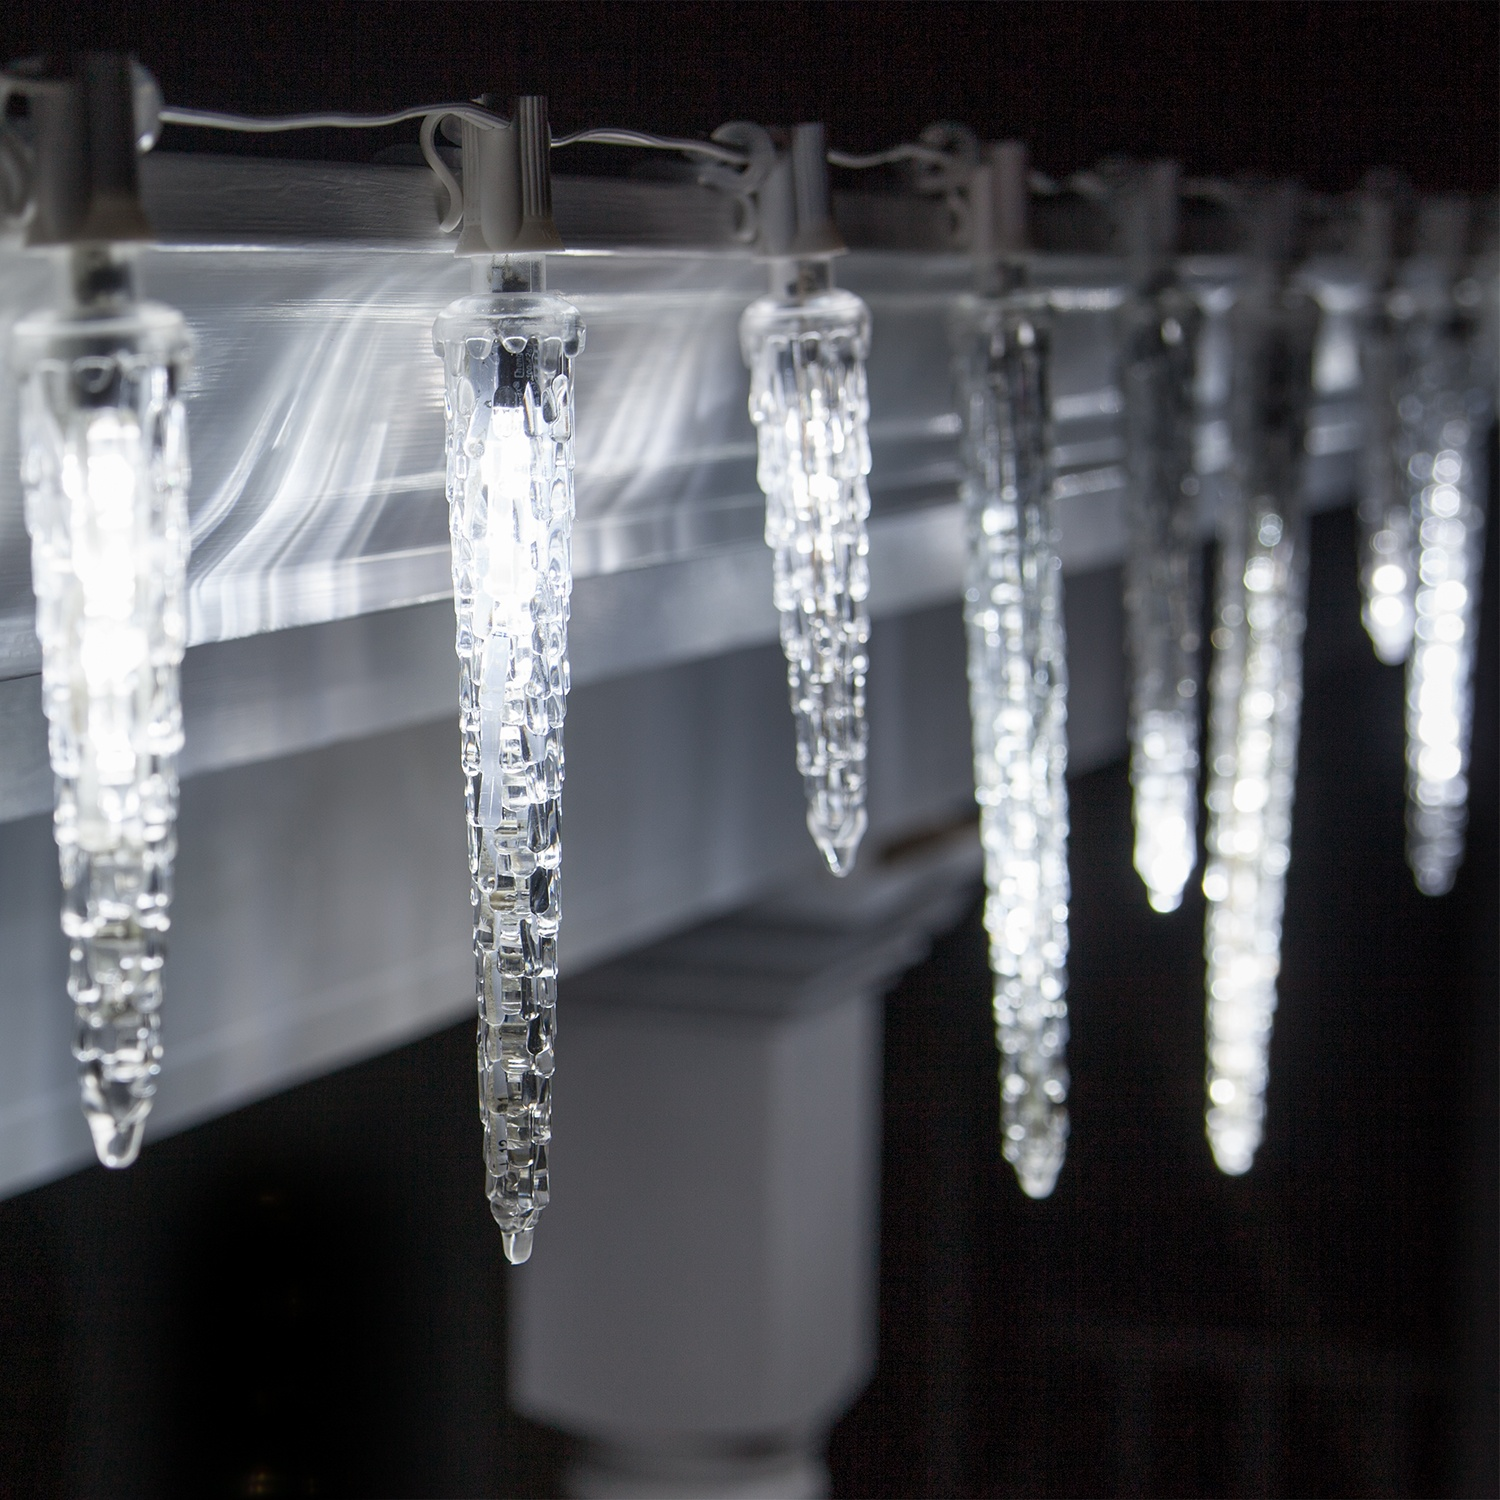 Falling Icicle Cool White LED Christmas Light Bulbs